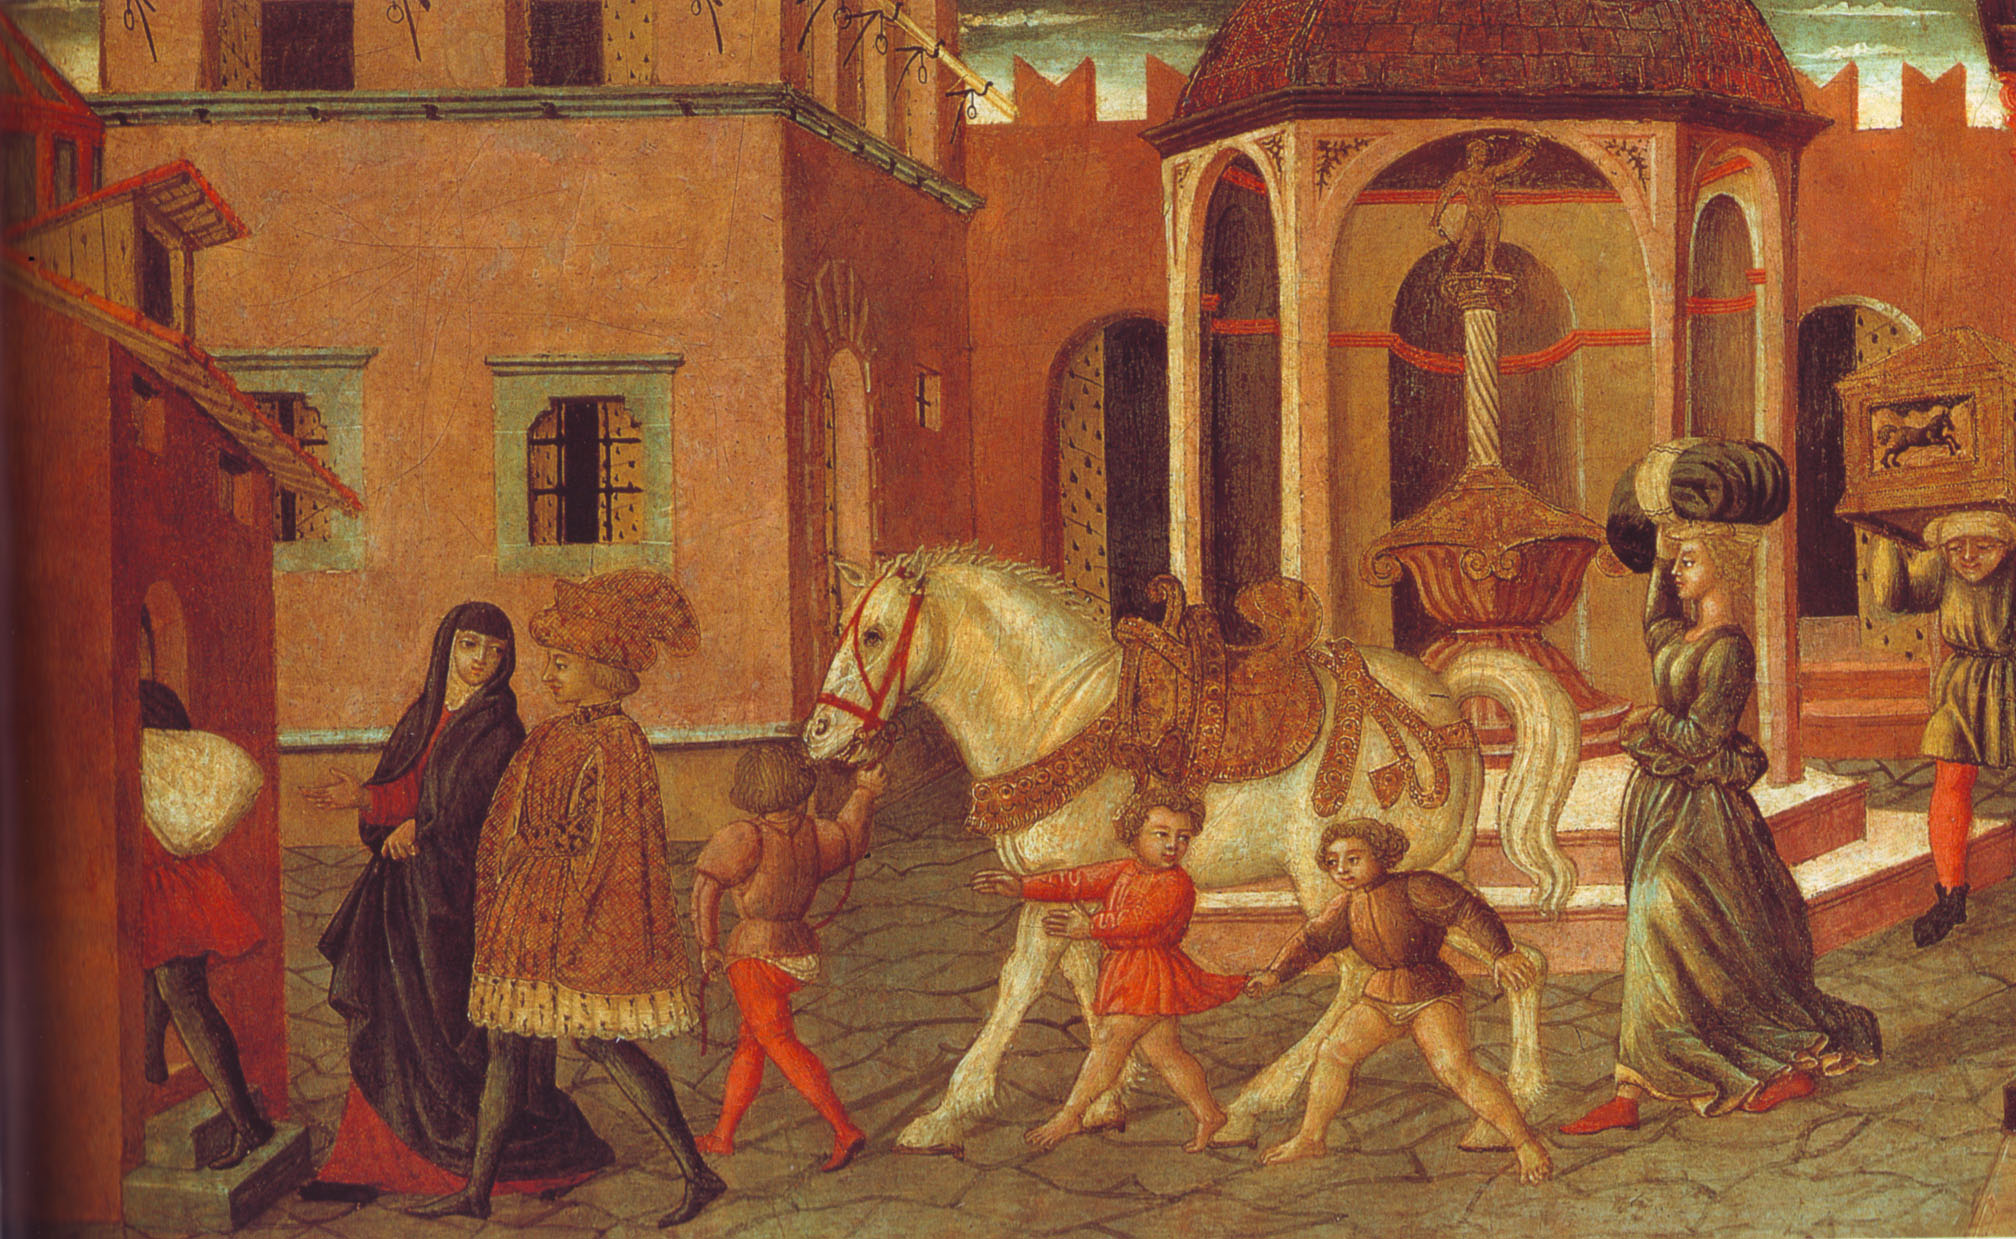 renaissance middle ages The goal of the middle ages is to help students understand the basic concepts of this historical period, including the barbarian invasions, feudalism, the crusades, the devastation of the plague, the causes of the renaissance and the beginning of the reformation.